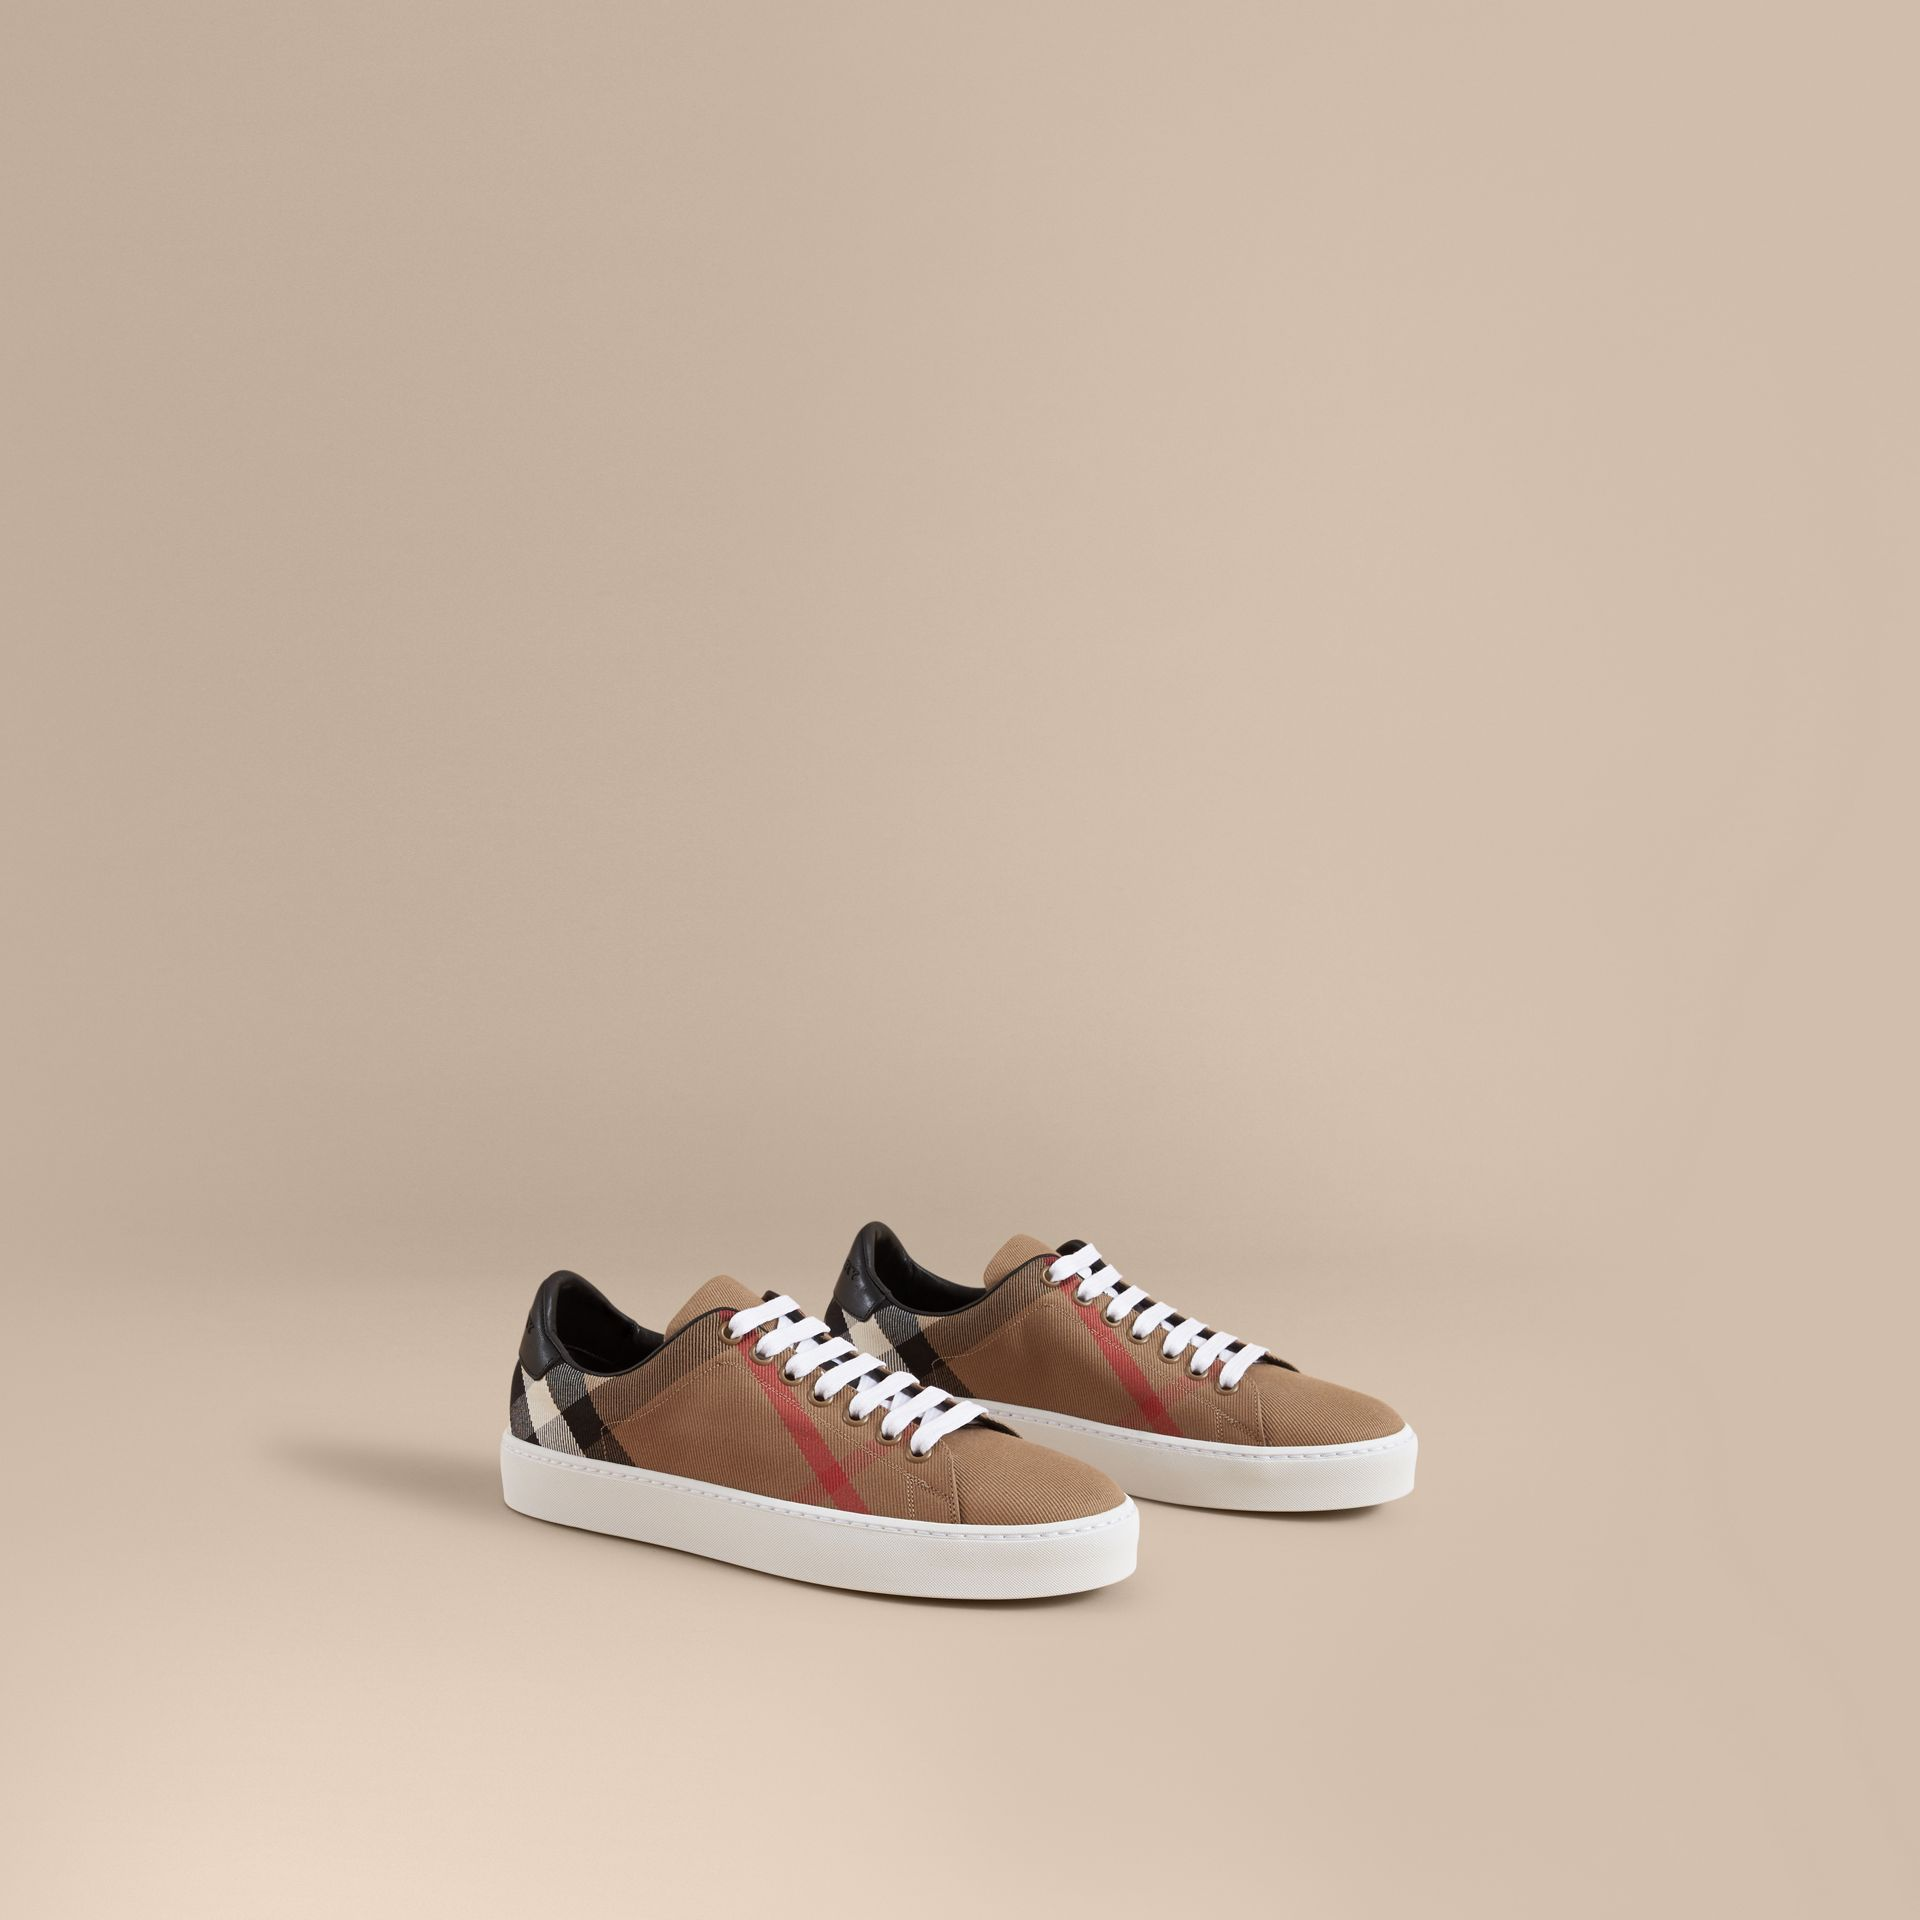 House Check and Leather Trainers in Classic - Women | Burberry Singapore - gallery image 1